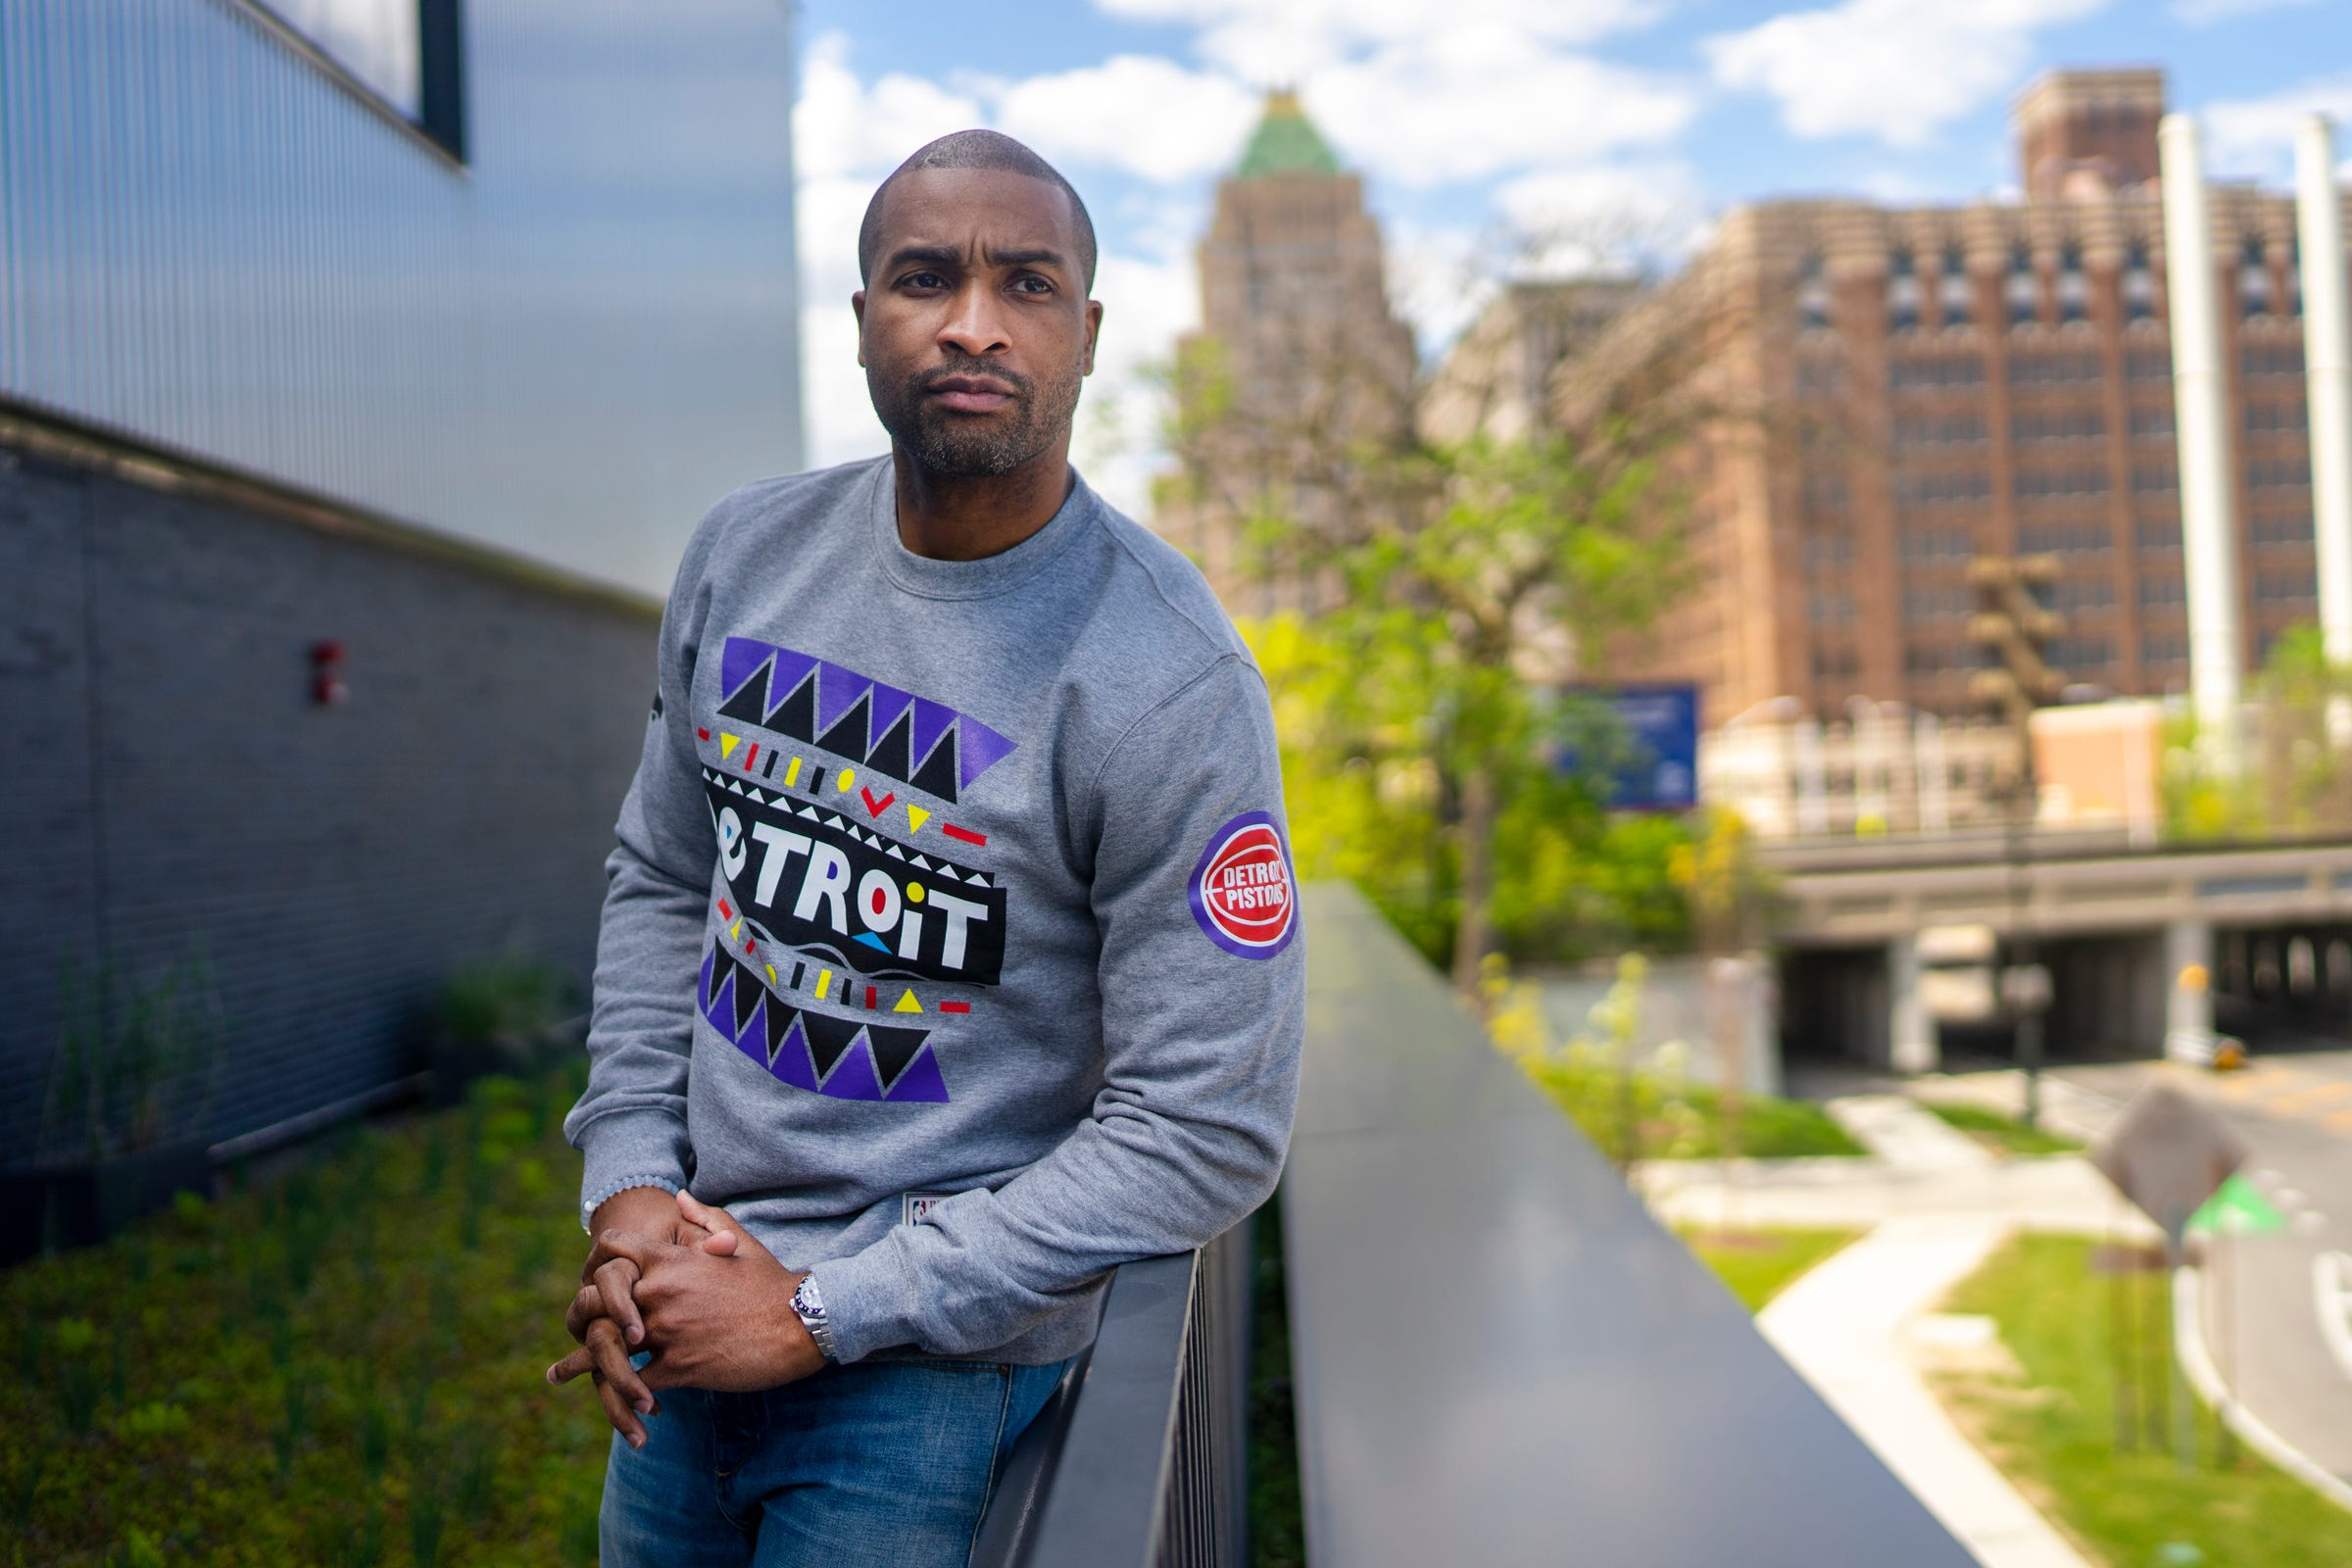 Will Bradford poses for a portrait wearing a sweater from the limited edition Pistons x Martin Merchandise Line at the Pistons Performance Center on Thursday, May 13, 2021, in Detroit.